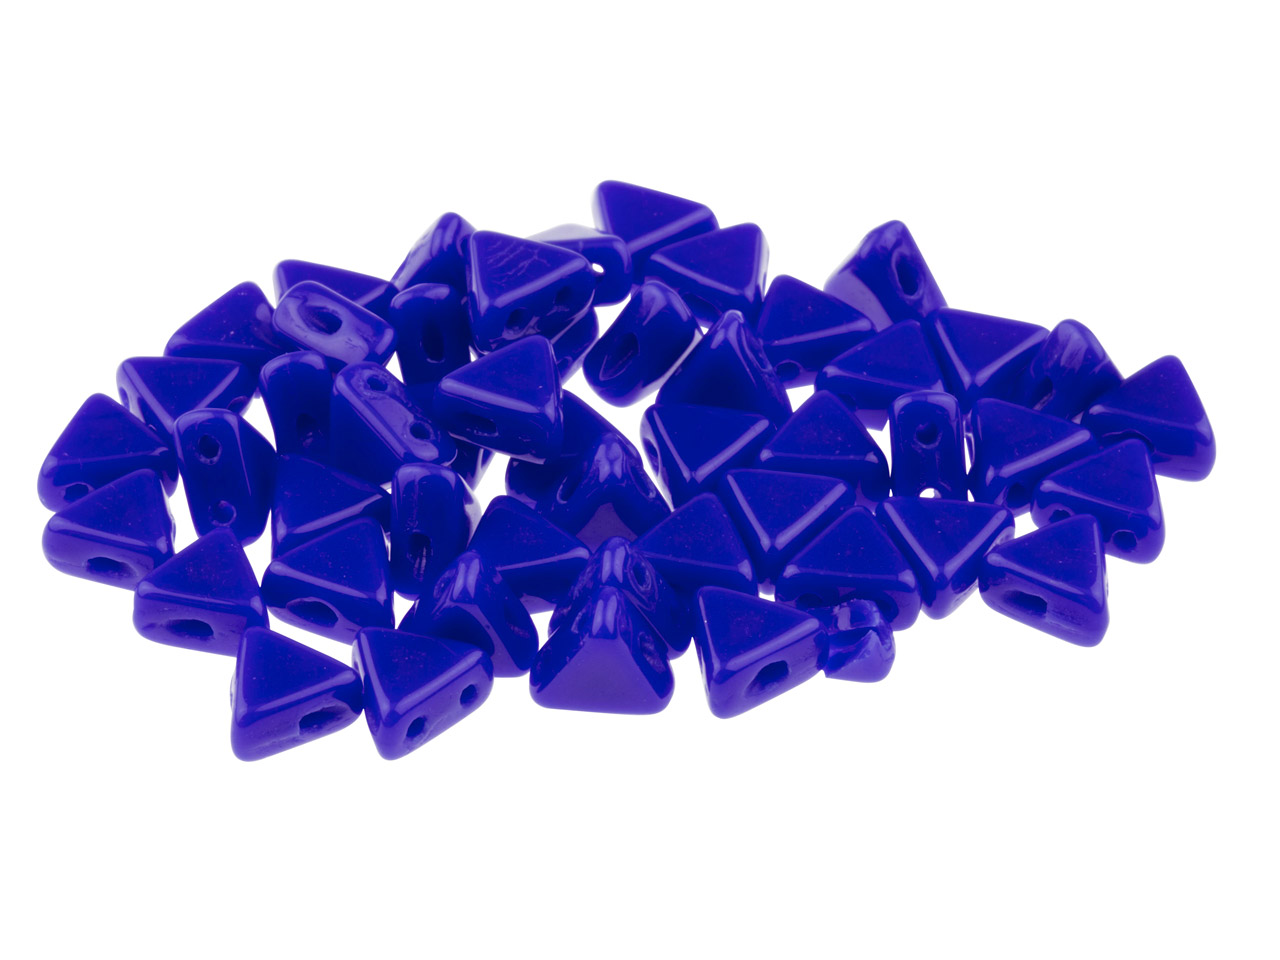 Kheops Puca 6mm Czech Beads, Opaque Sapphire, 9g Tube, Two-holed Beads